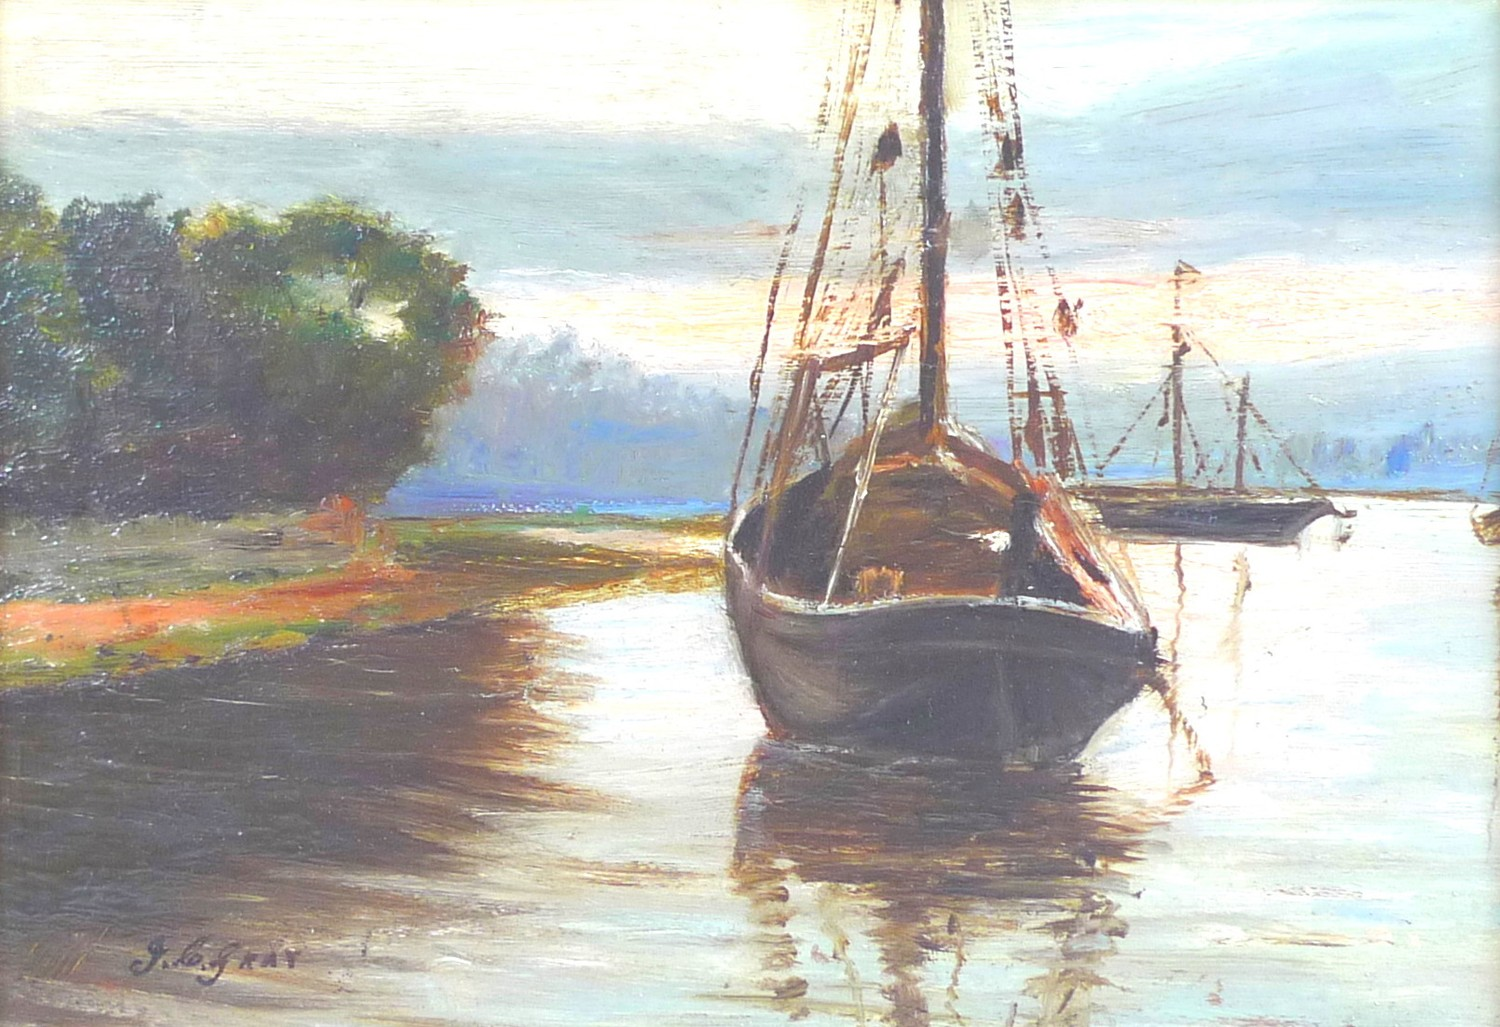 John C. Gray (Scottish, circa 1880-1945): boats on a river, signed lower left, oil on board, 16.5 by